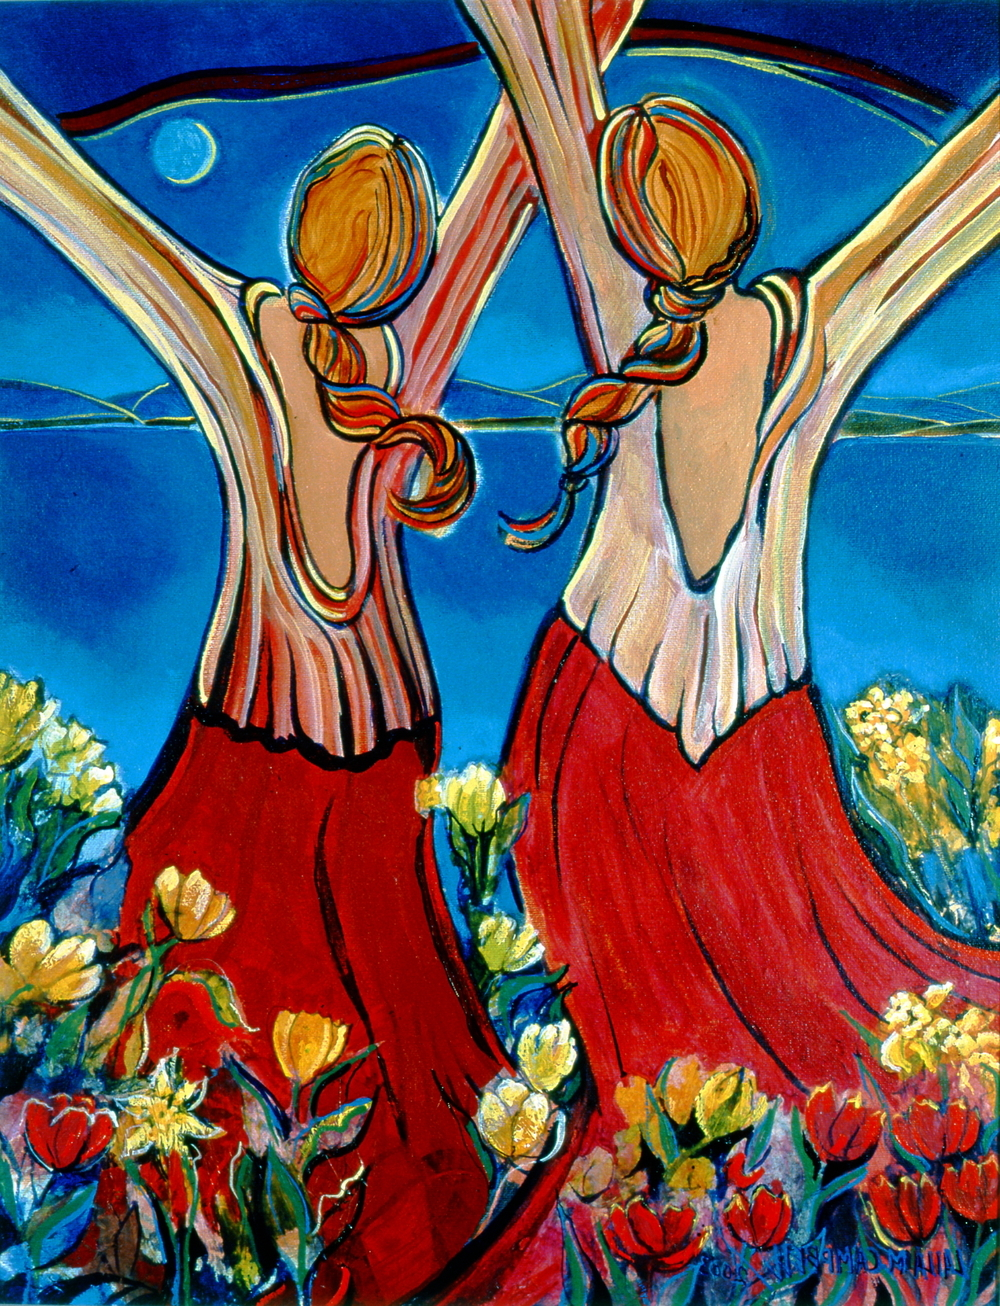 Spring Dancers , 2003, Laila M. Campbell, acrylic and tissue paper on canvas, 45 cm x 35 cm, 2003.01.01. Gift of the artist.